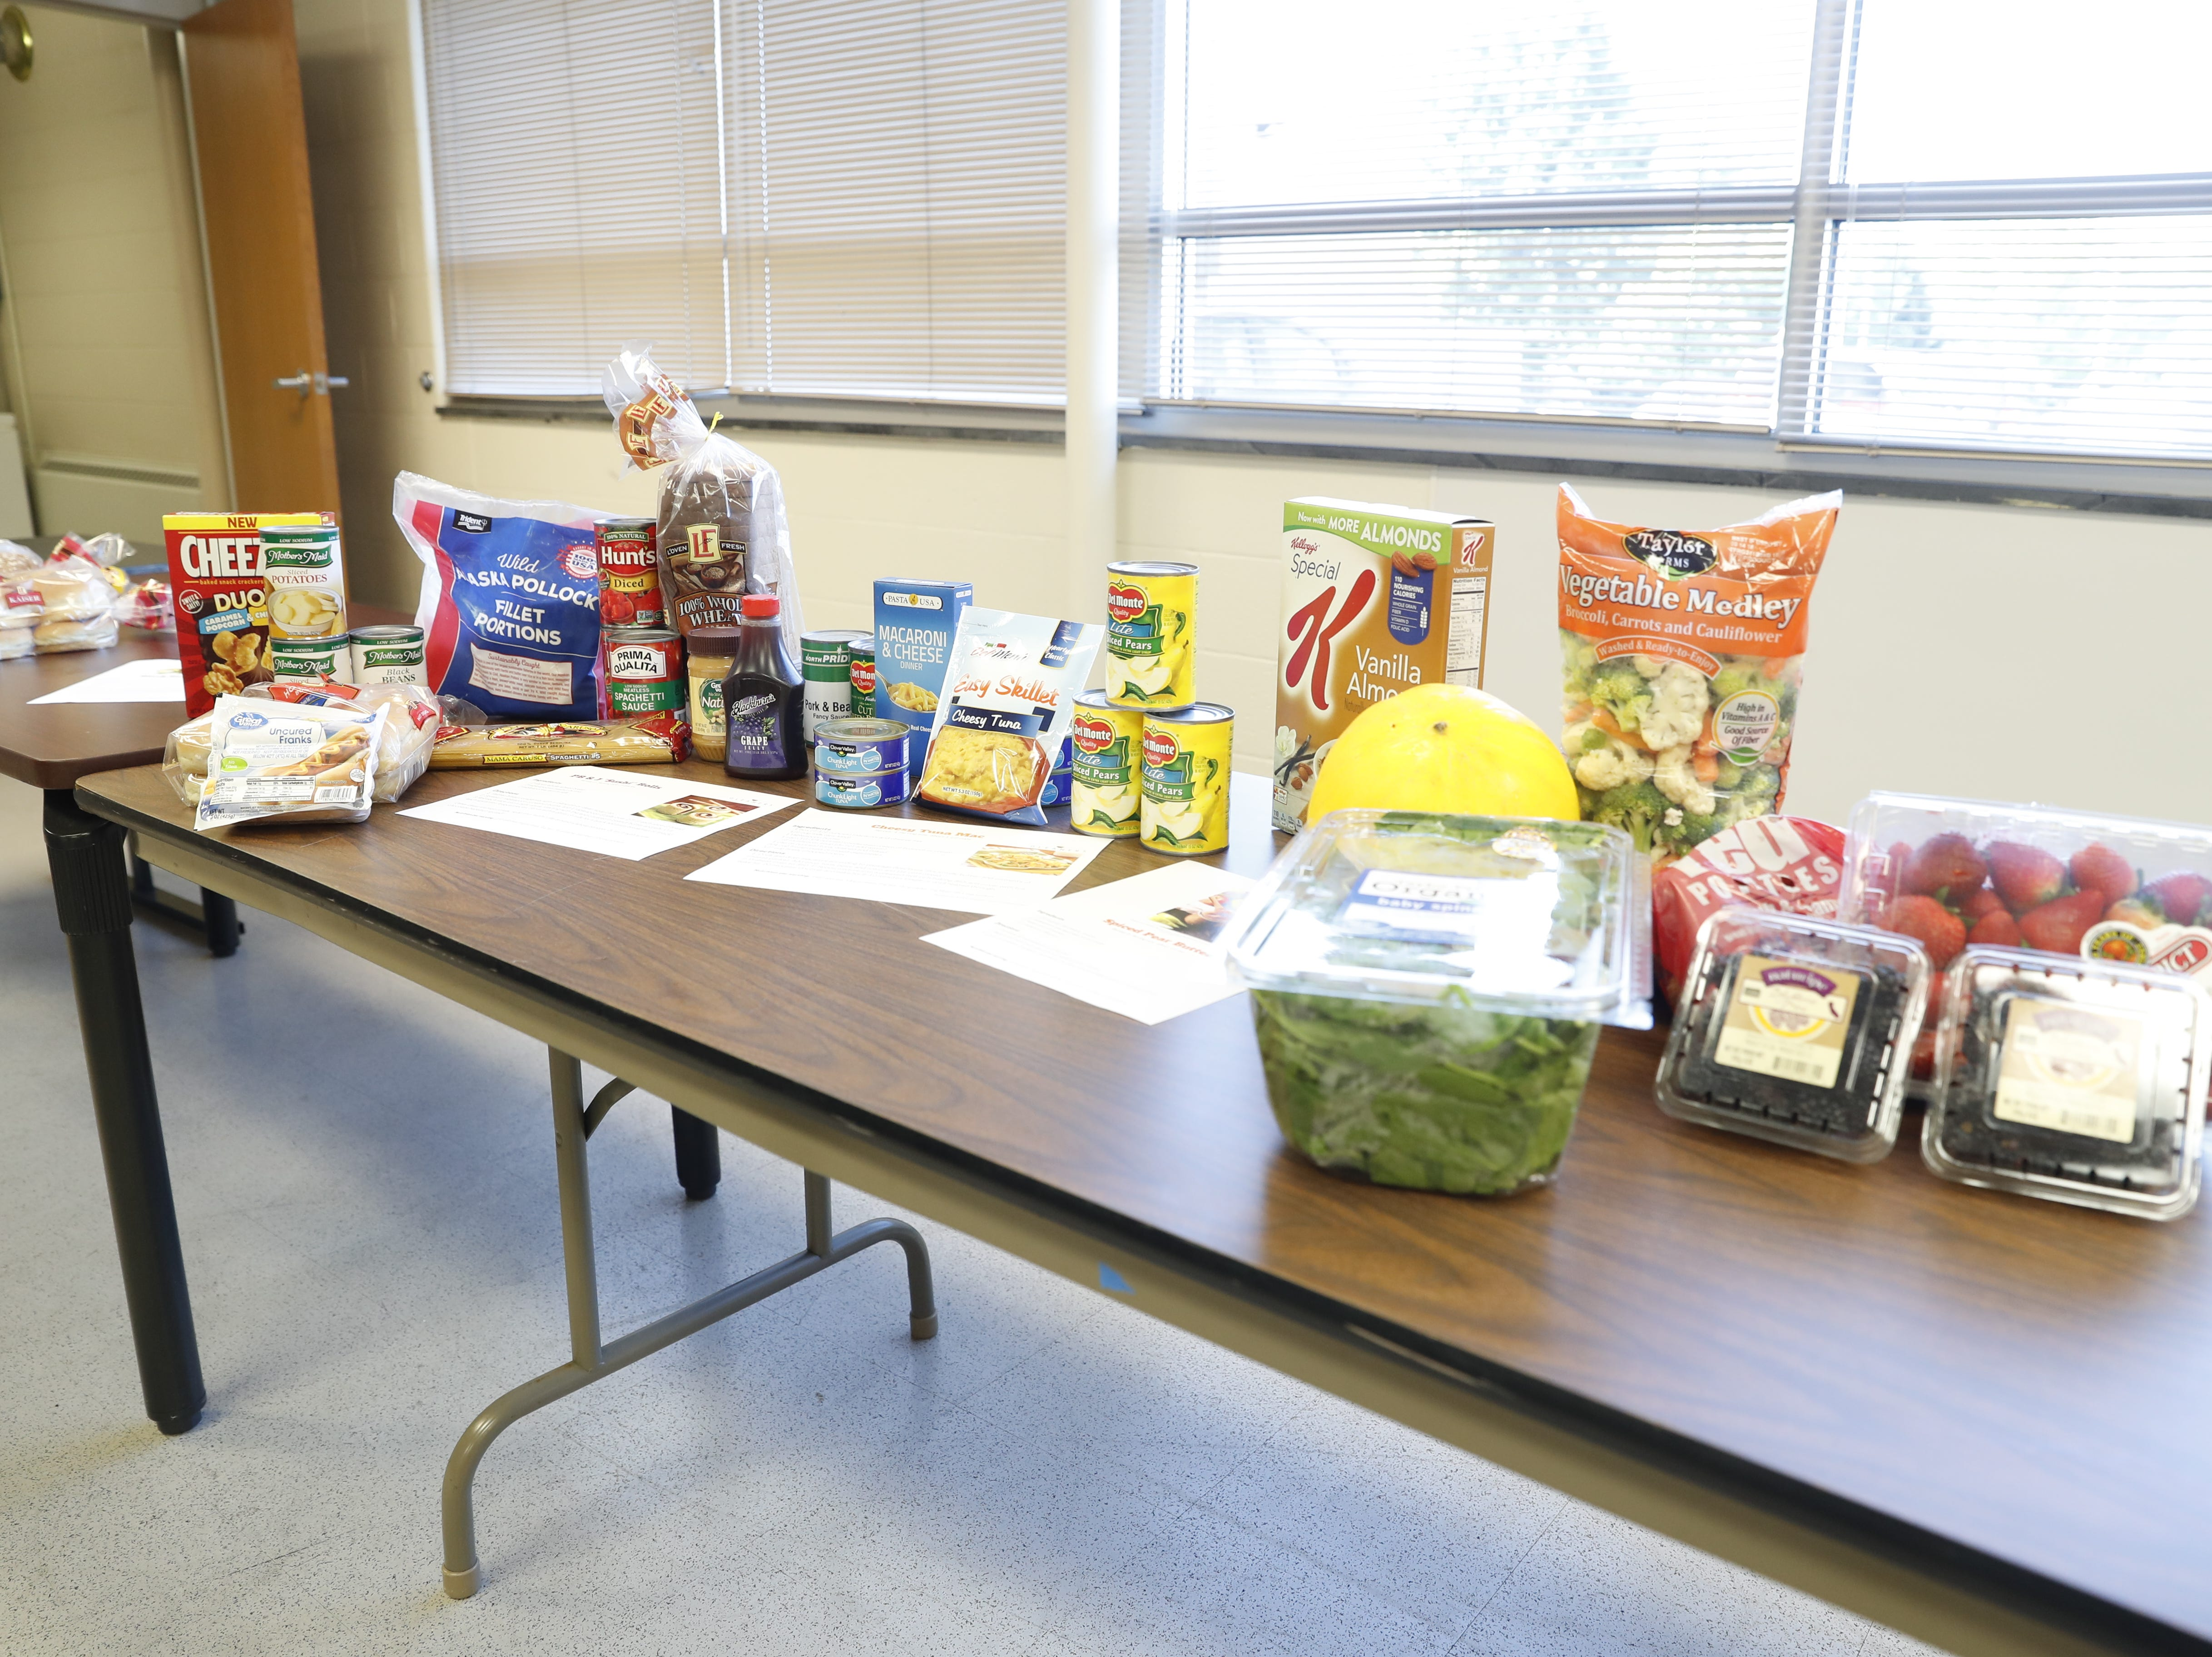 Food that could feed a family of three for eight to twelve meals is set out during the official opening of Gleaners Hamilton County Cupboard food pantry at Ivy Tech in Noblesville Ind. on Thursday, Sept. 13, 2018. The Joint partnership among Gleaners, Ivy Tech and Goodwill will serve college students who are food-insecure.